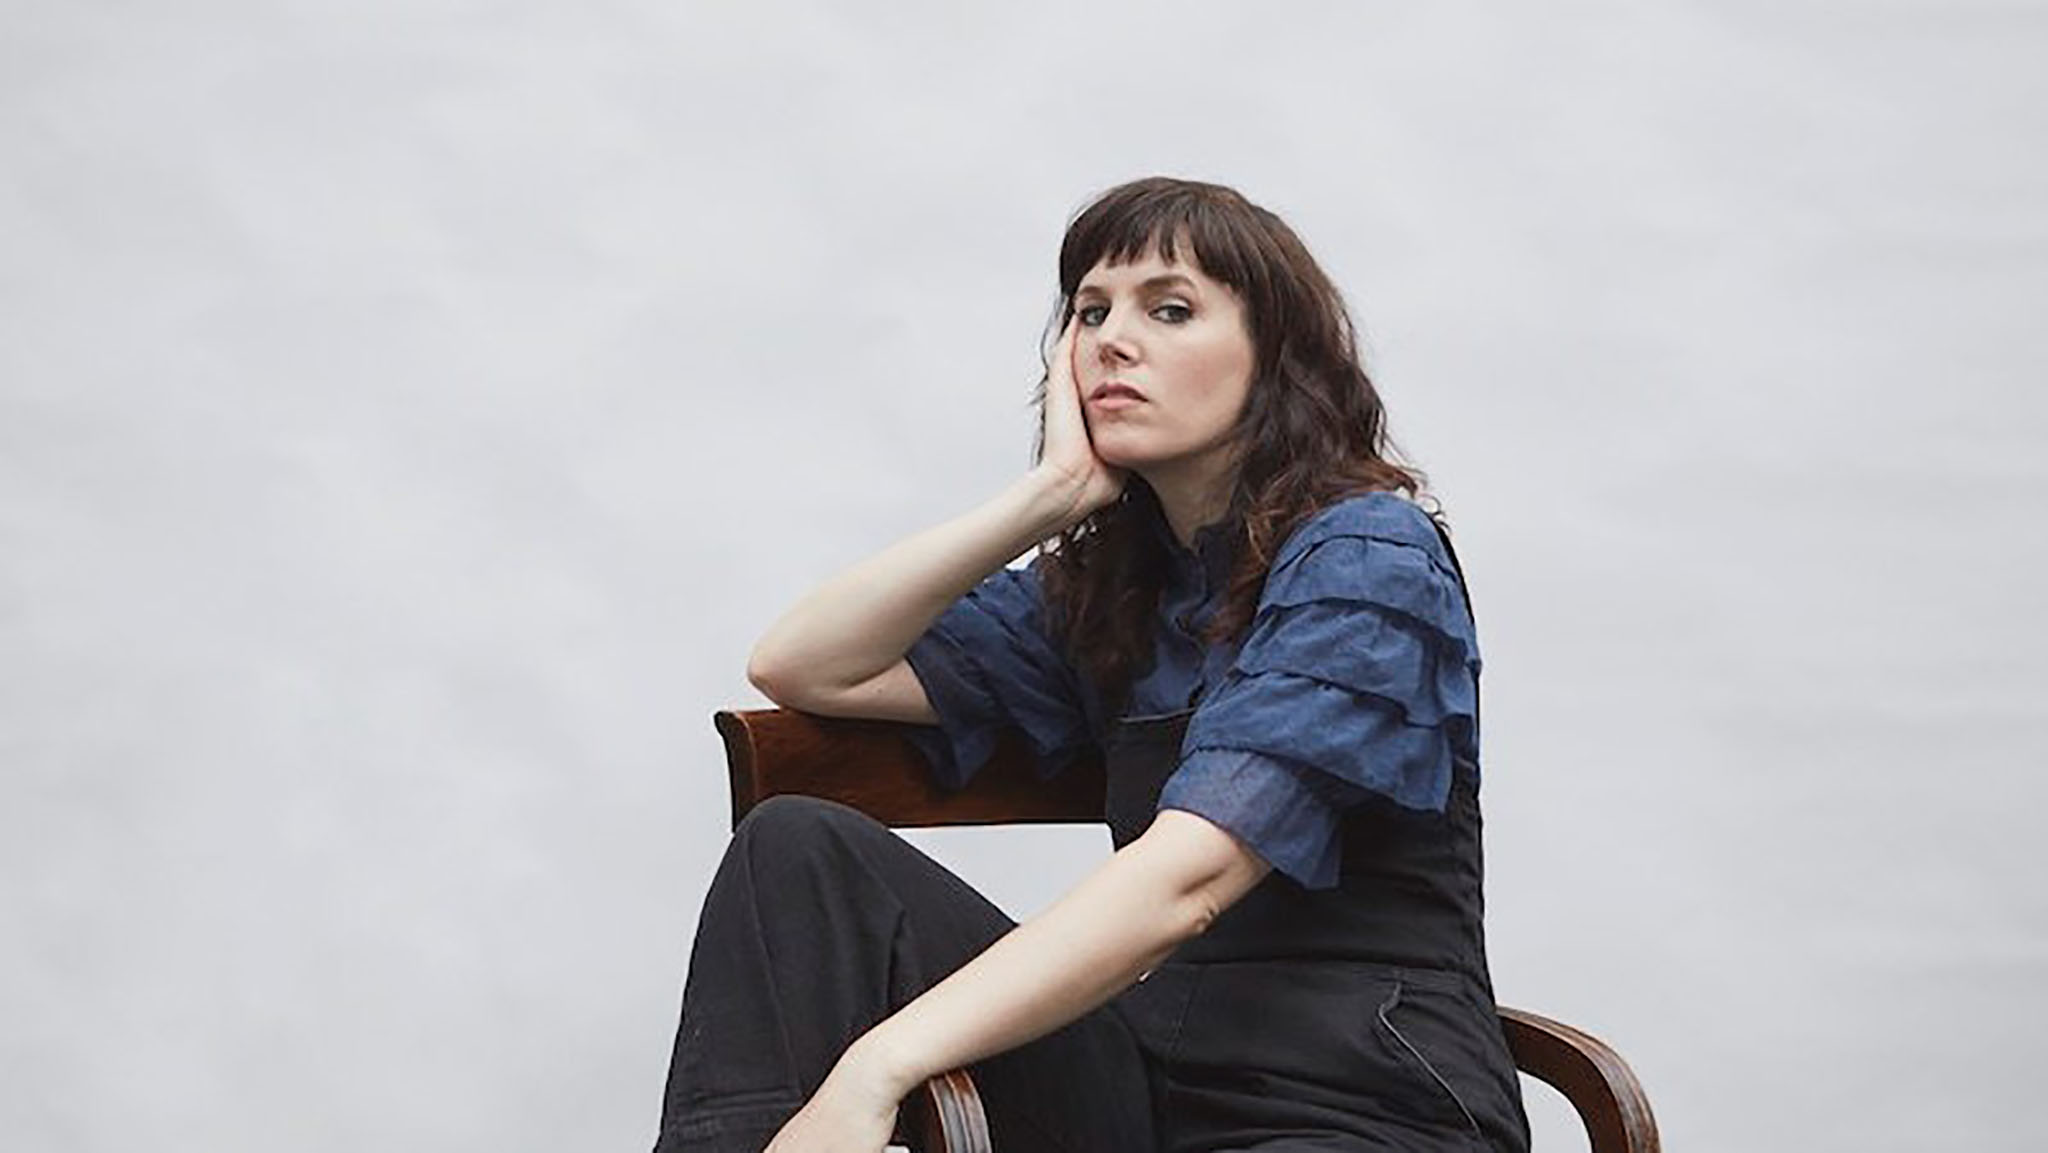 Anna Meredith: 'I never listen to music. It just distracts me'